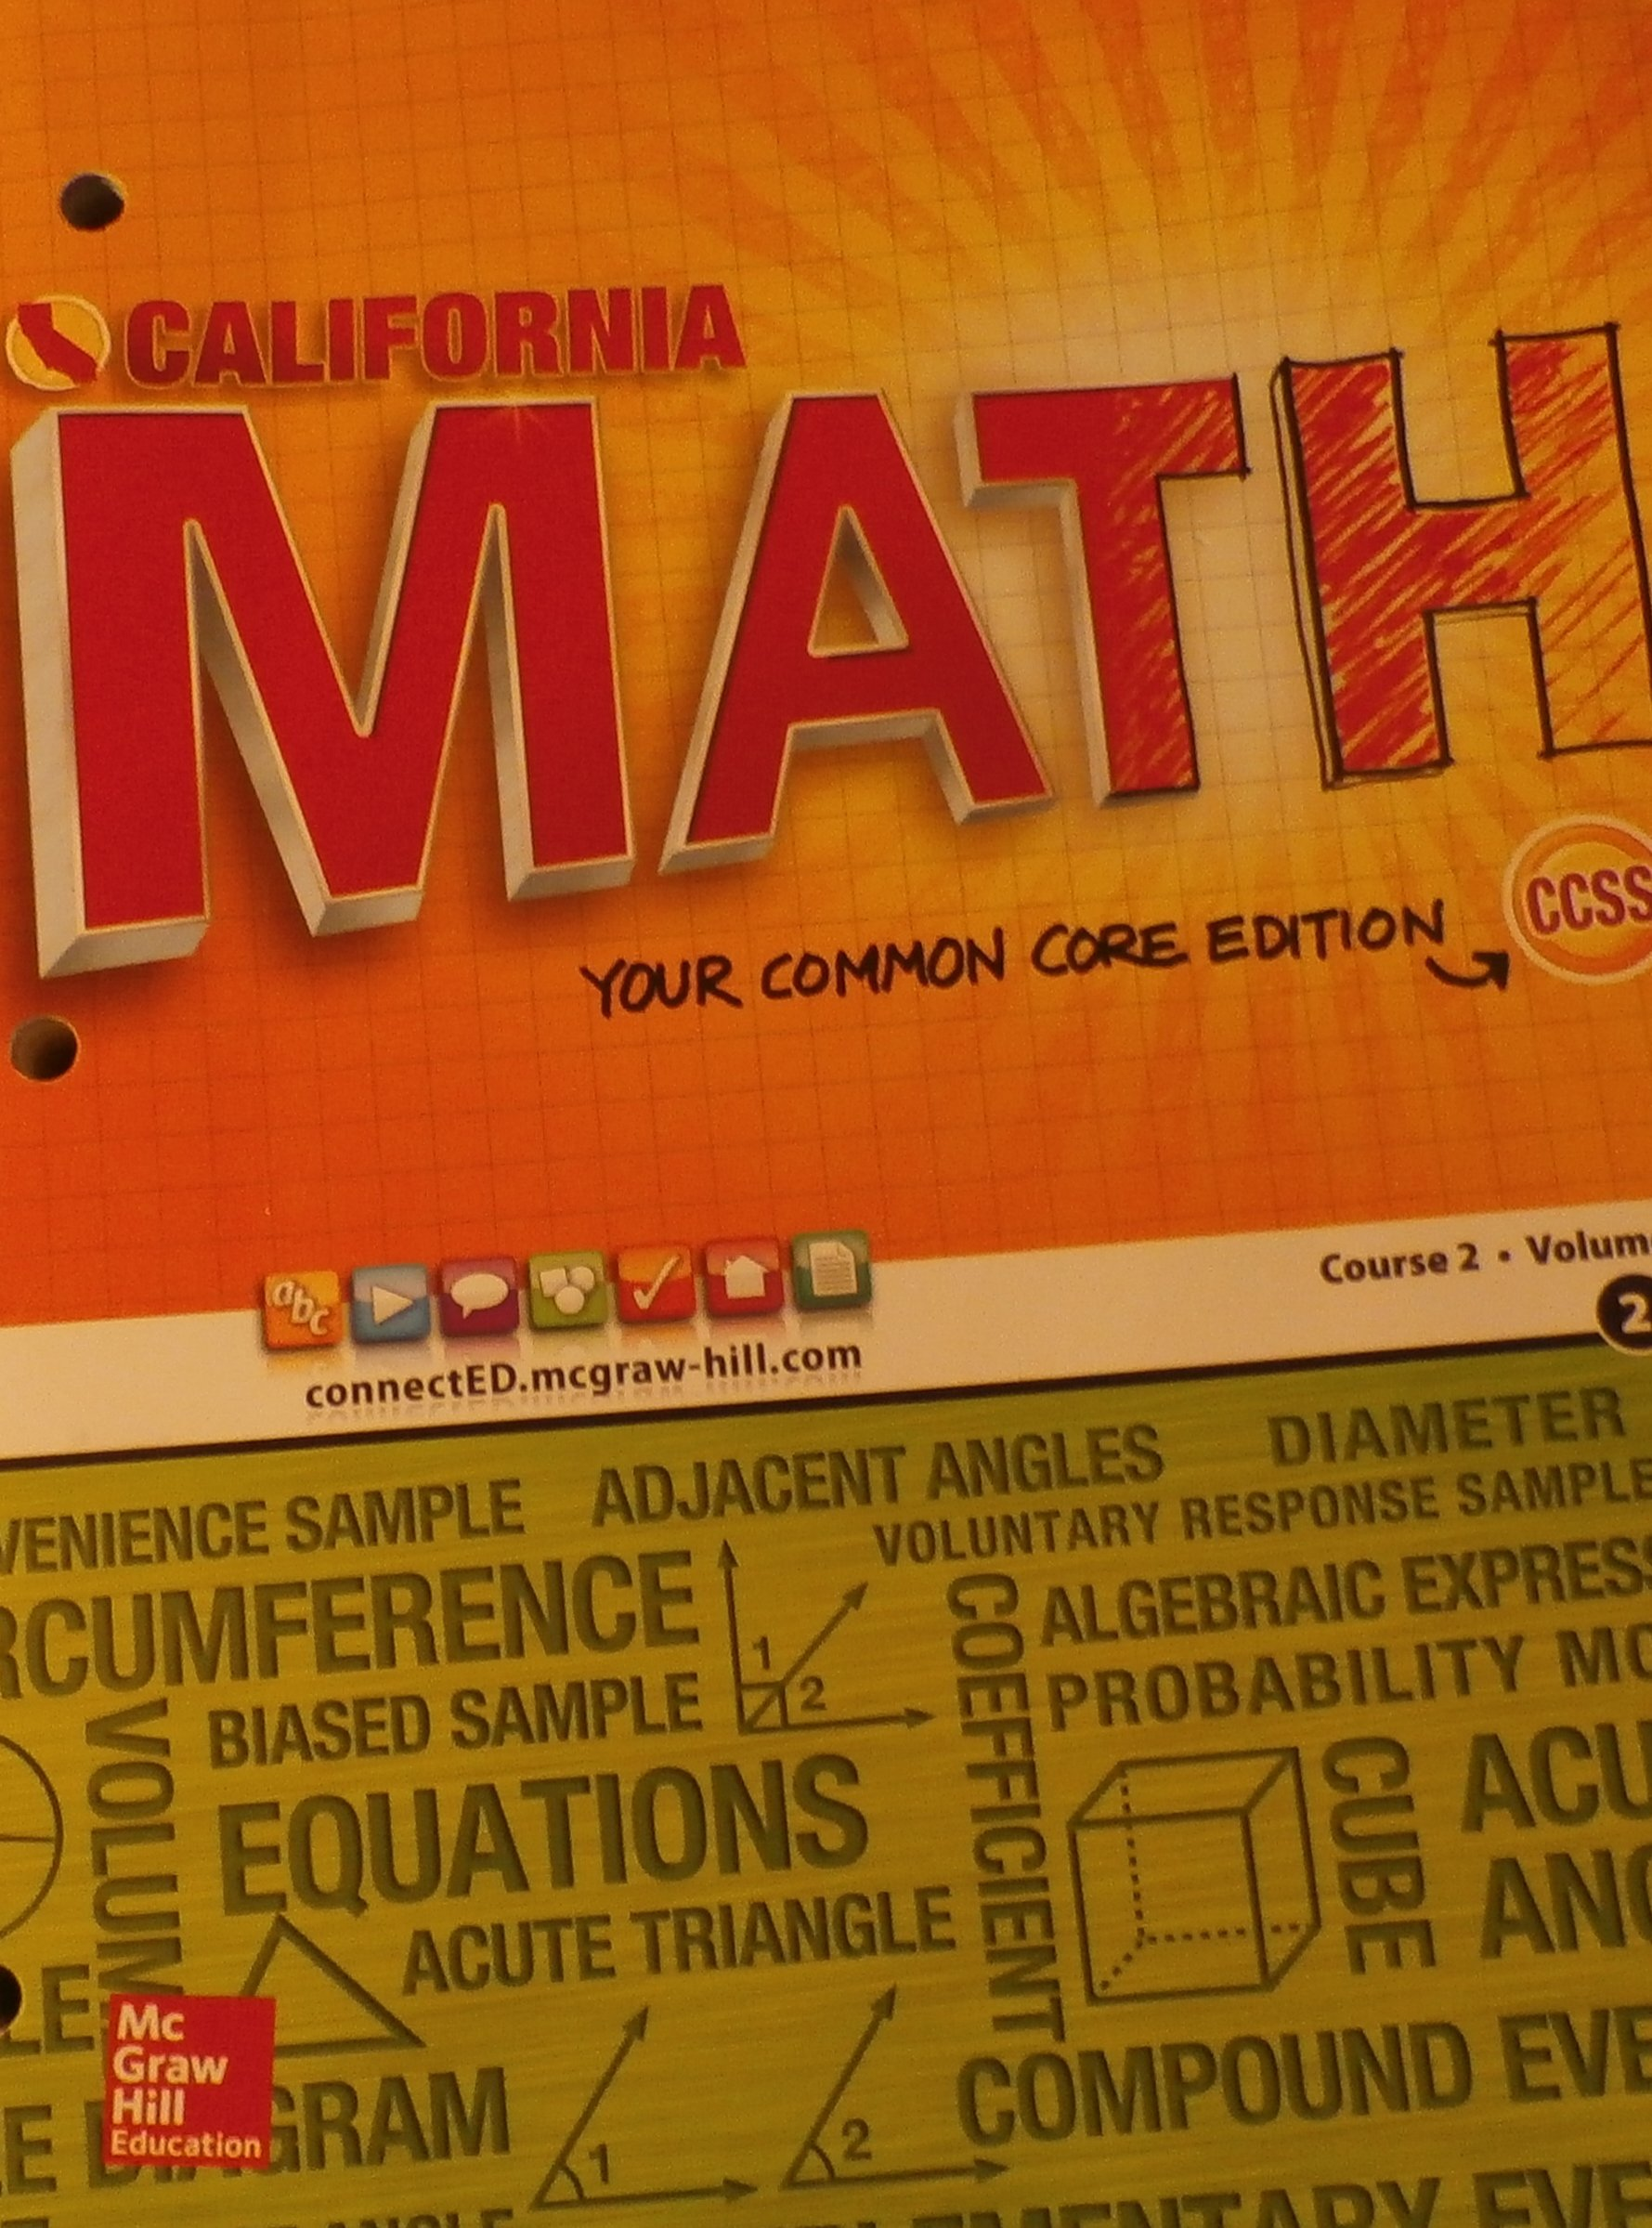 California math your common core edition course 2volume 2 carter california math your common core edition course 2volume 2 carter cuevas day 9780021359165 amazon books fandeluxe Gallery